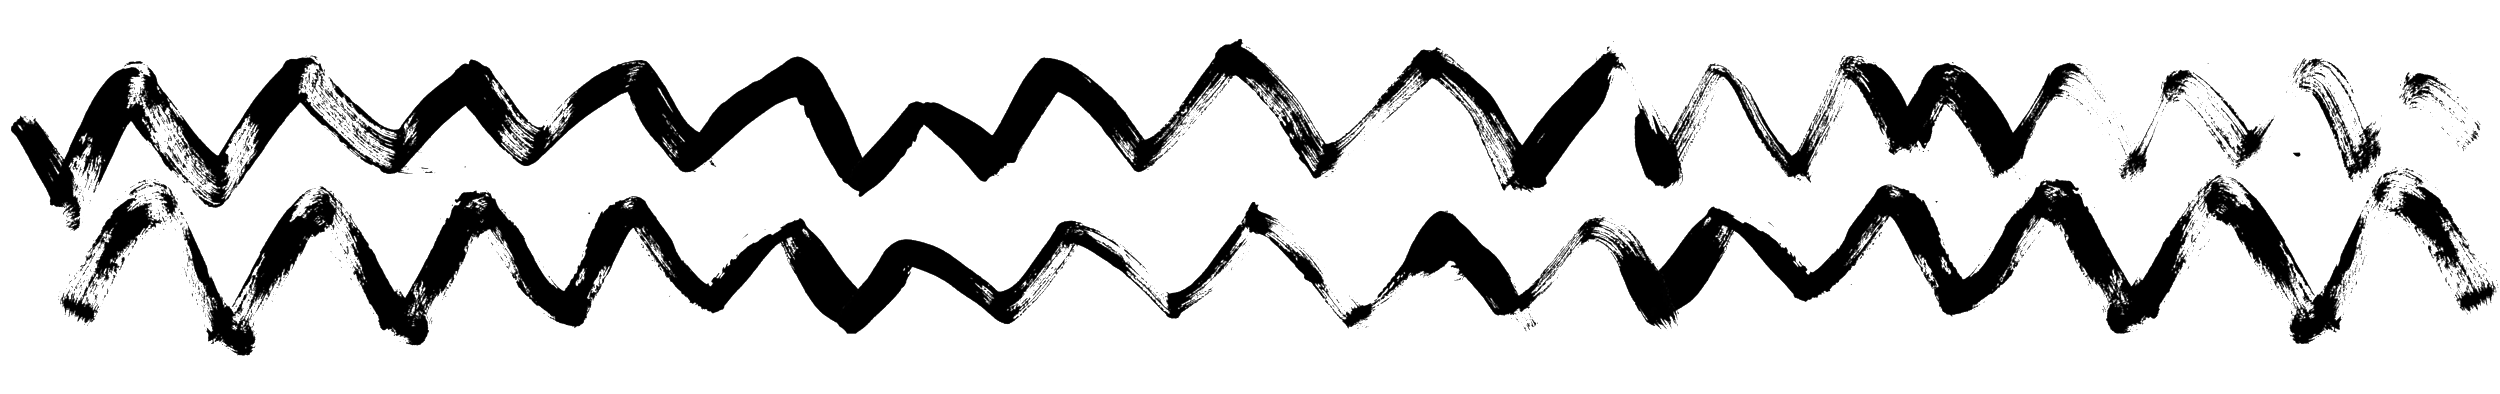 zigzag_extended.png